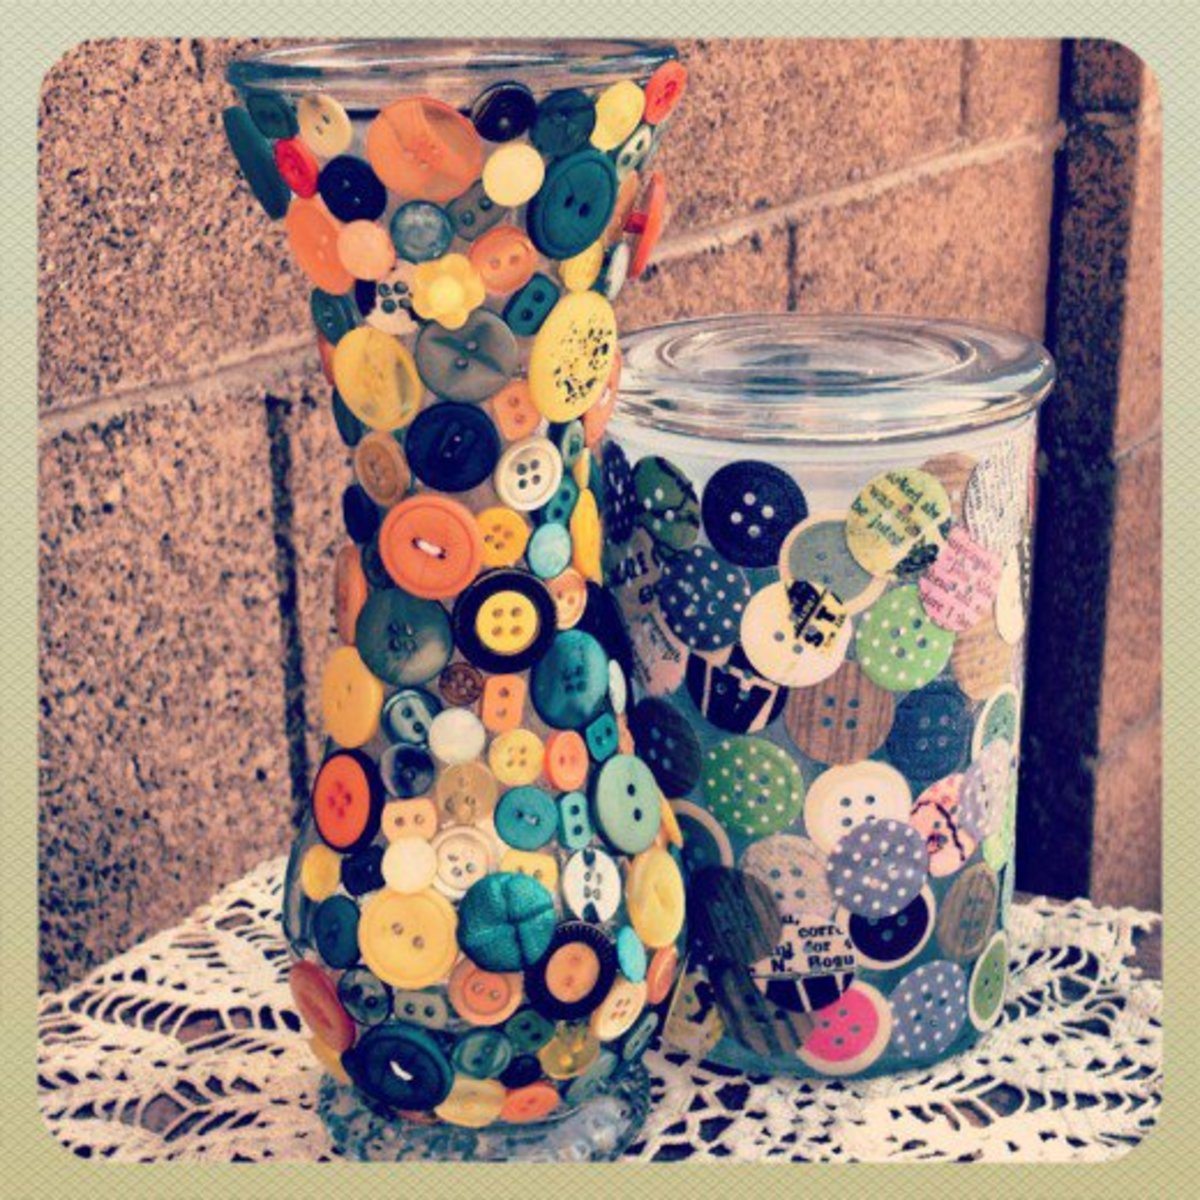 recycled-repurposed-craft-ideas-glass-jar-vase-projects-tutorials